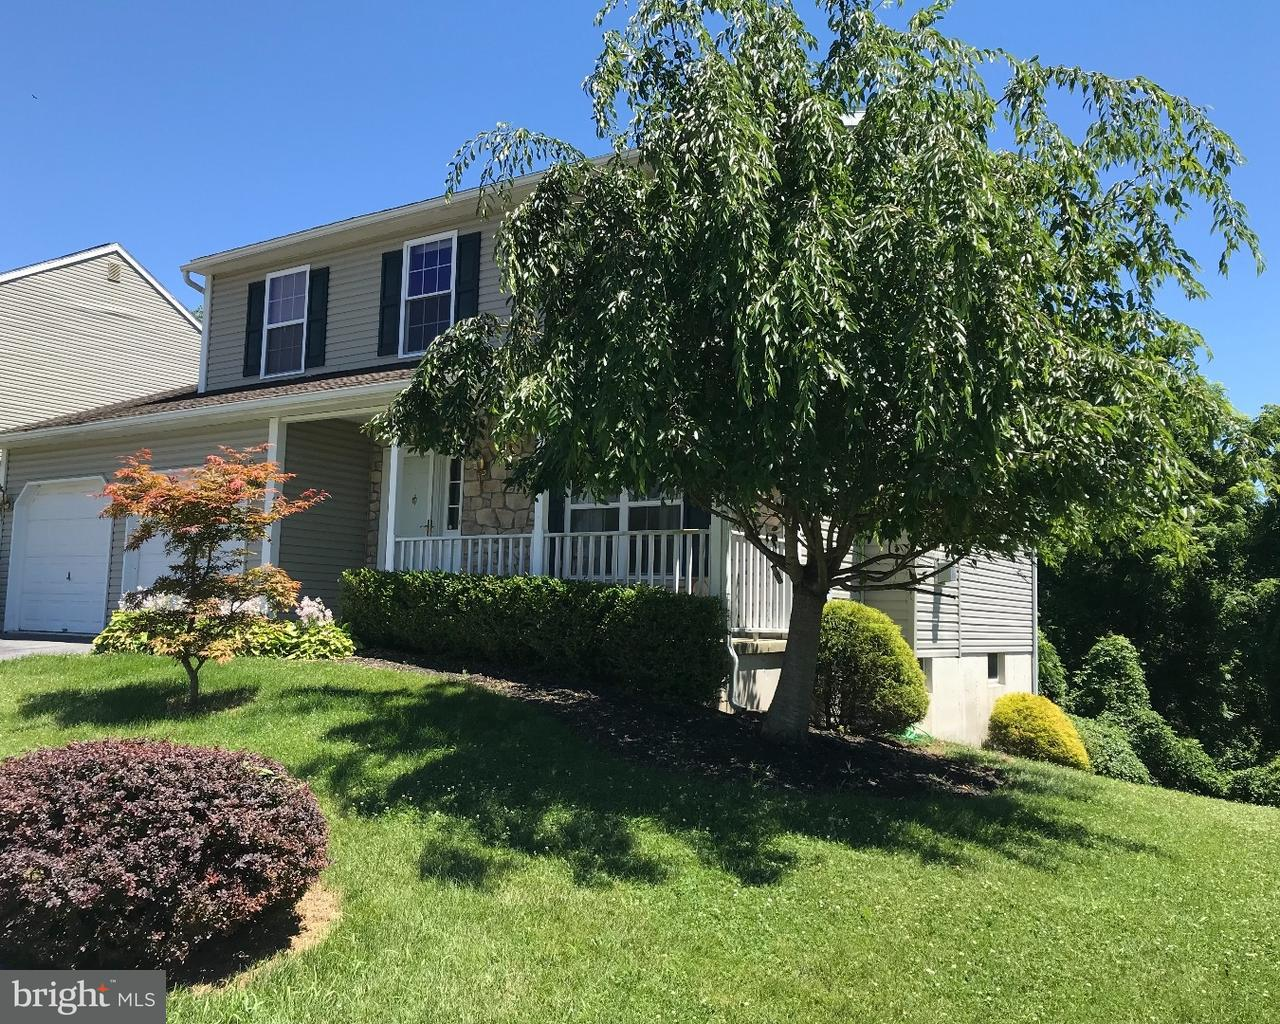 222 LONGVIEW DR, SINKING SPRING - Listed at $259,900, SINKING SPRING